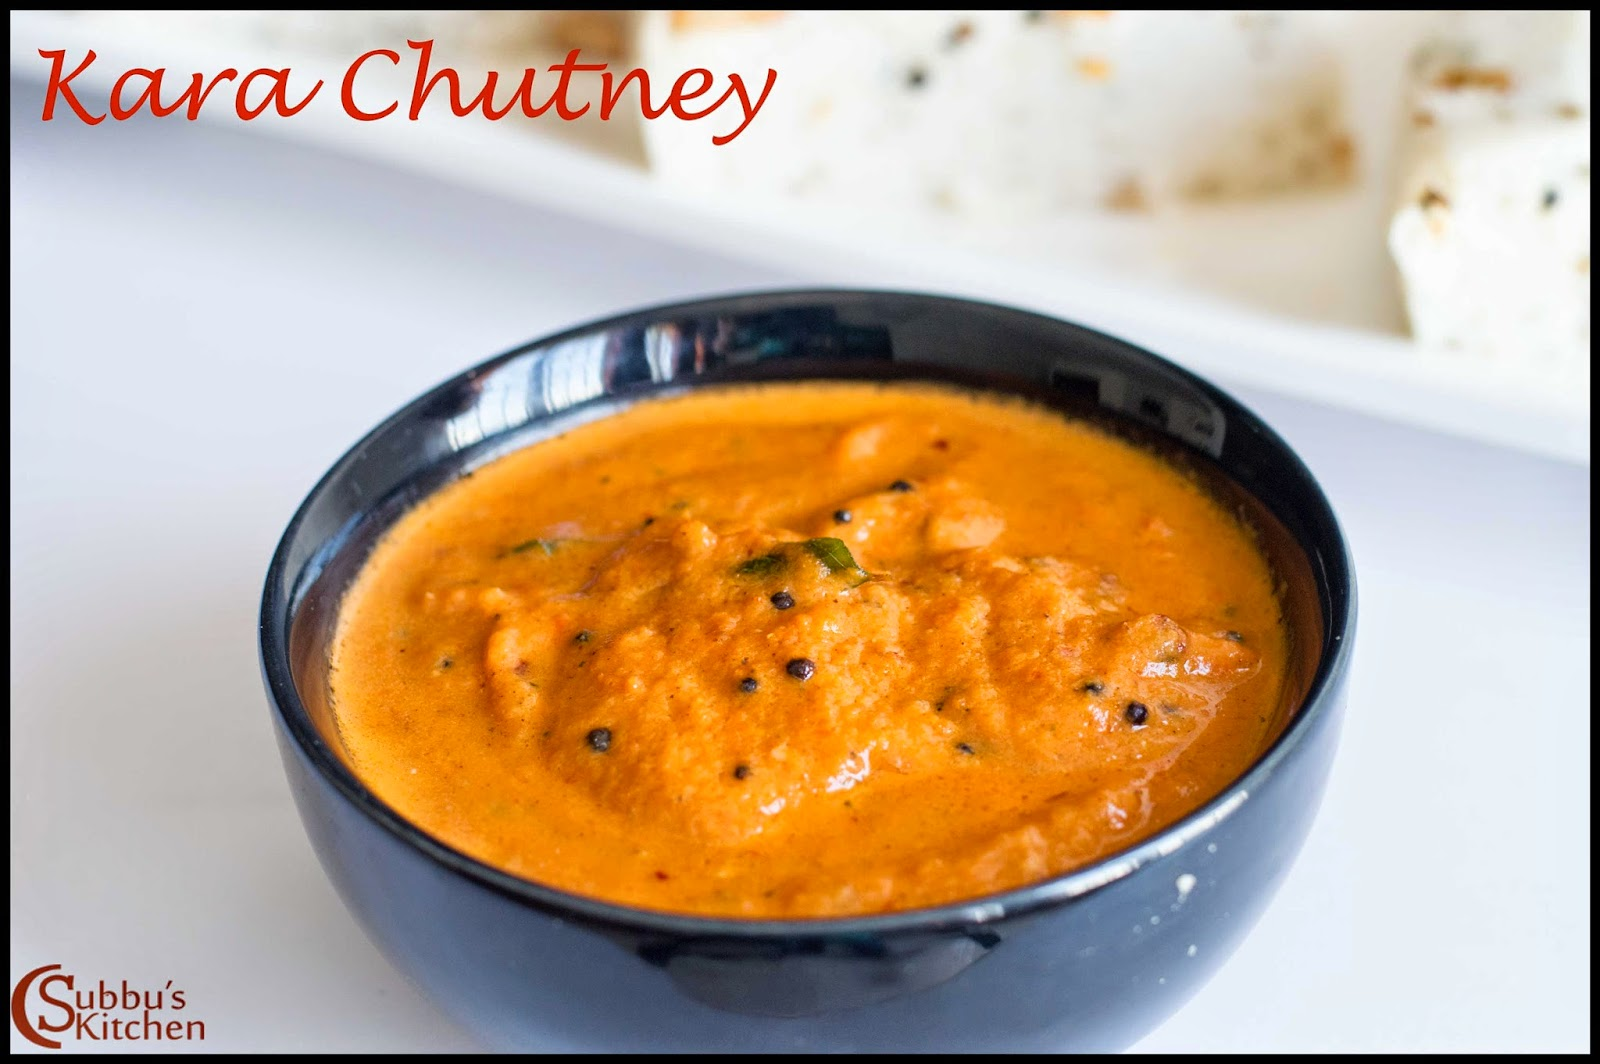 Kara Chutney Recipe | Hot Spicy Chutney Recipe